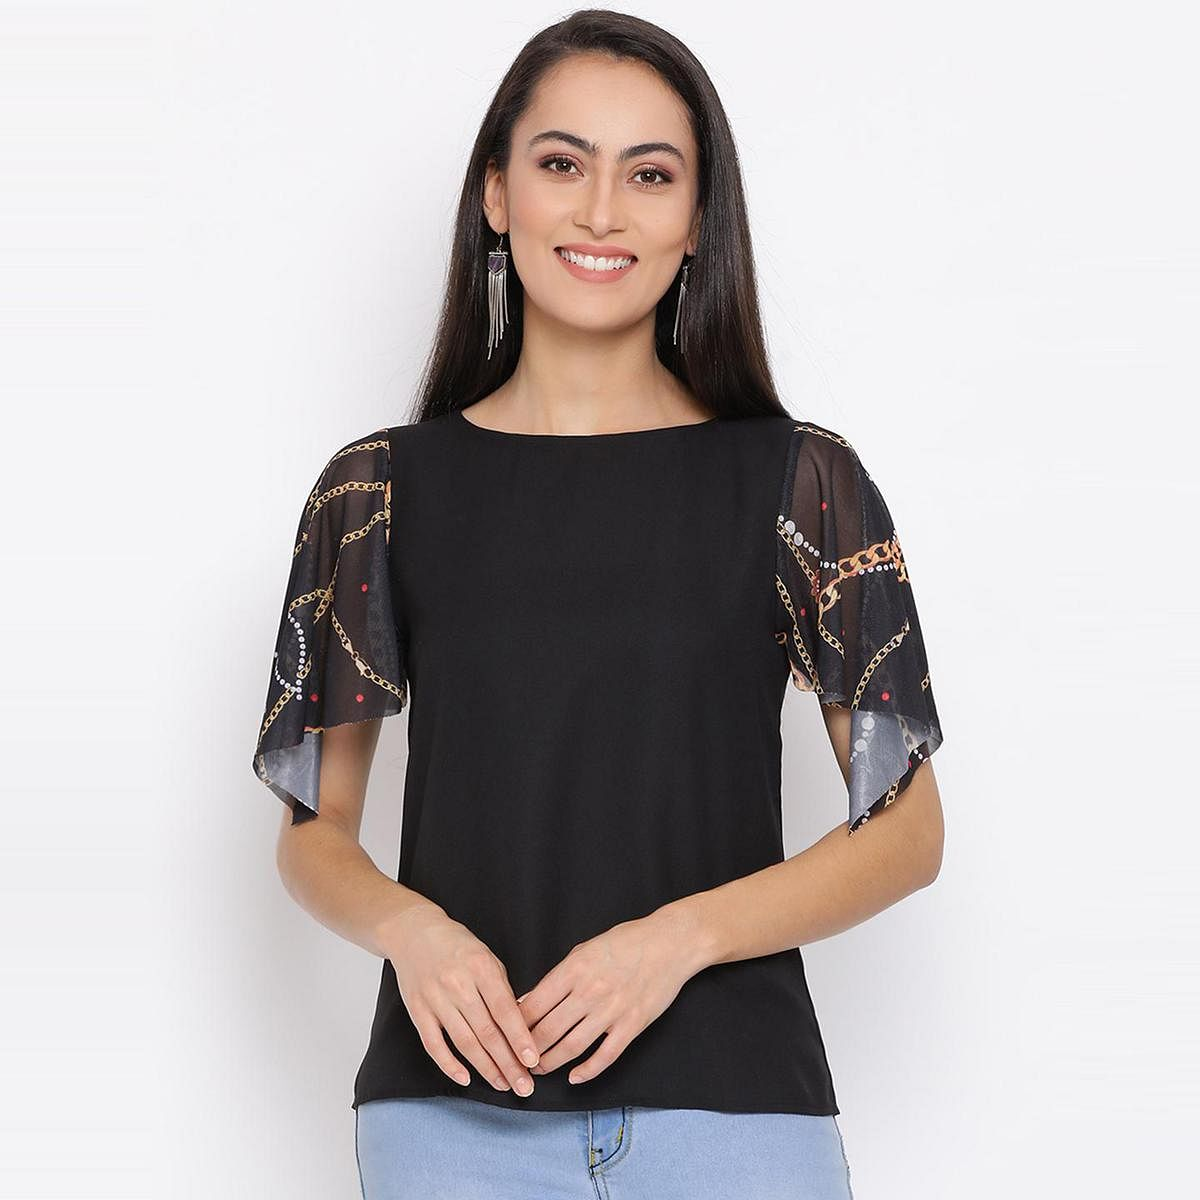 All Ways You - Black Colored Casual Wear Self Design Semi-sheer Polyester Top